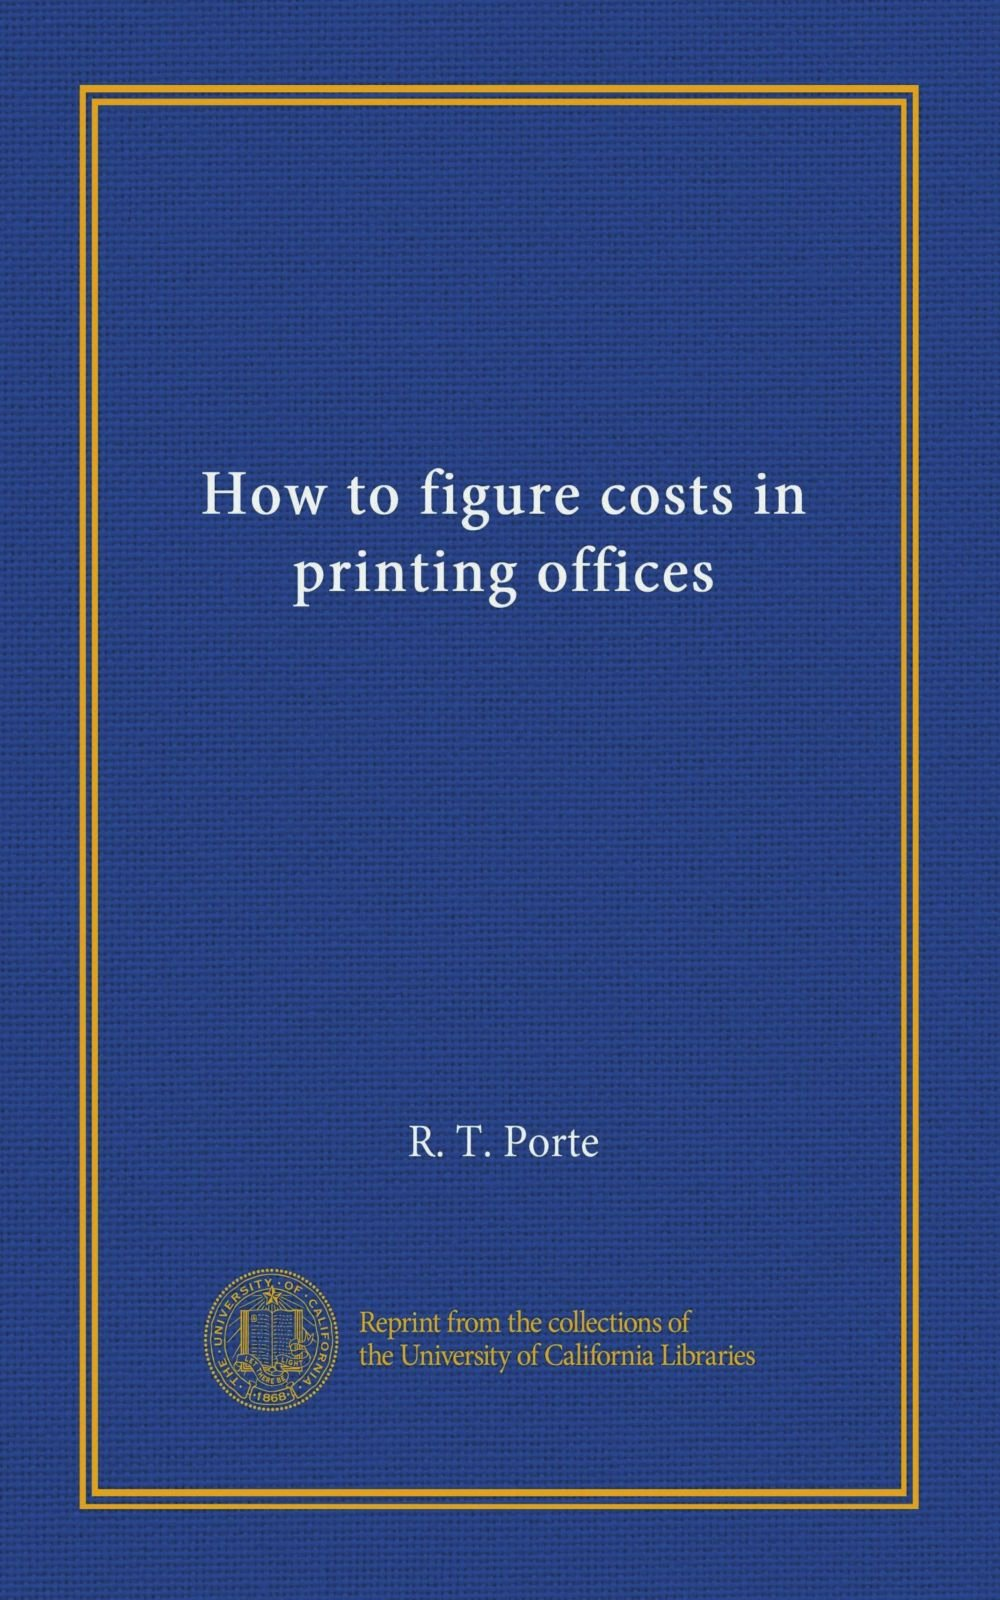 Download How to figure costs in printing offices PDF